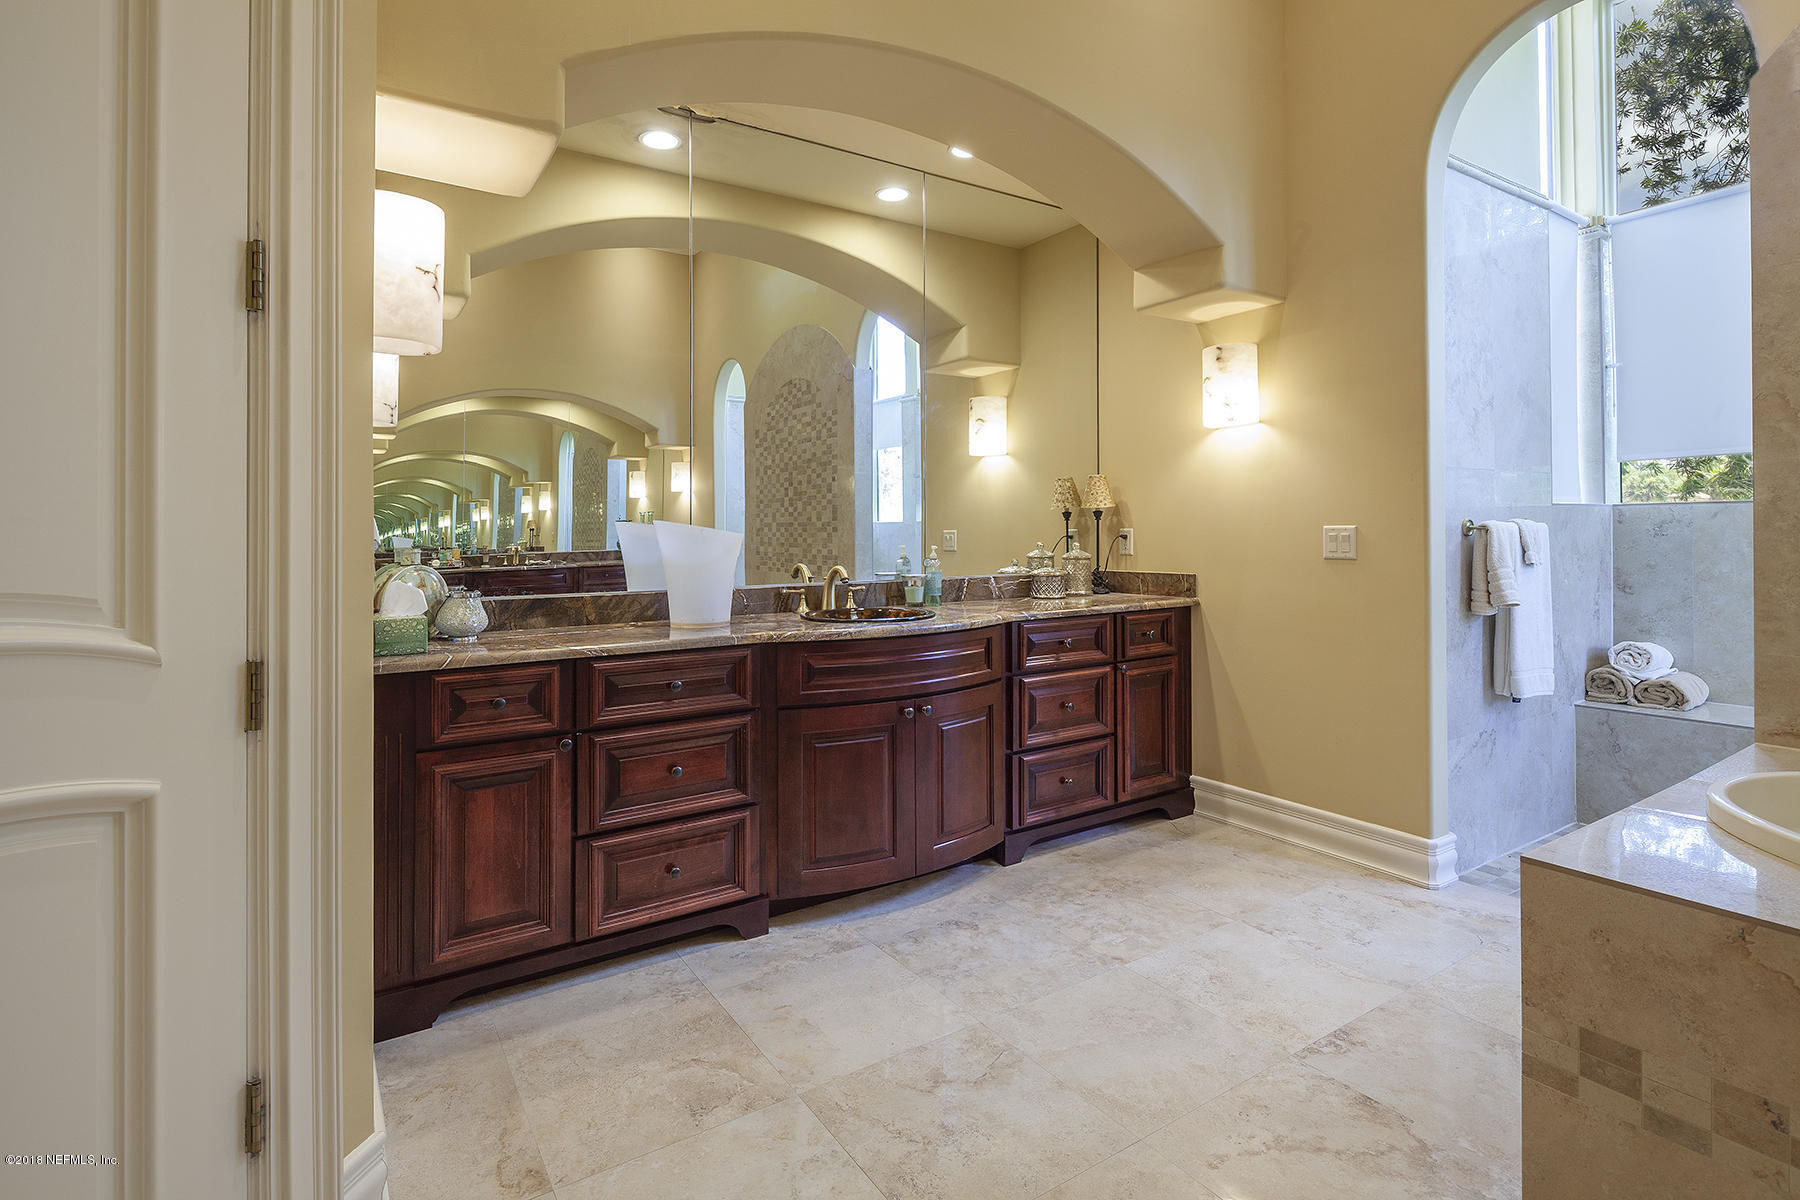 181 ROSCOE, PONTE VEDRA BEACH, FLORIDA 32082, 5 Bedrooms Bedrooms, ,7 BathroomsBathrooms,Residential - single family,For sale,ROSCOE,918986